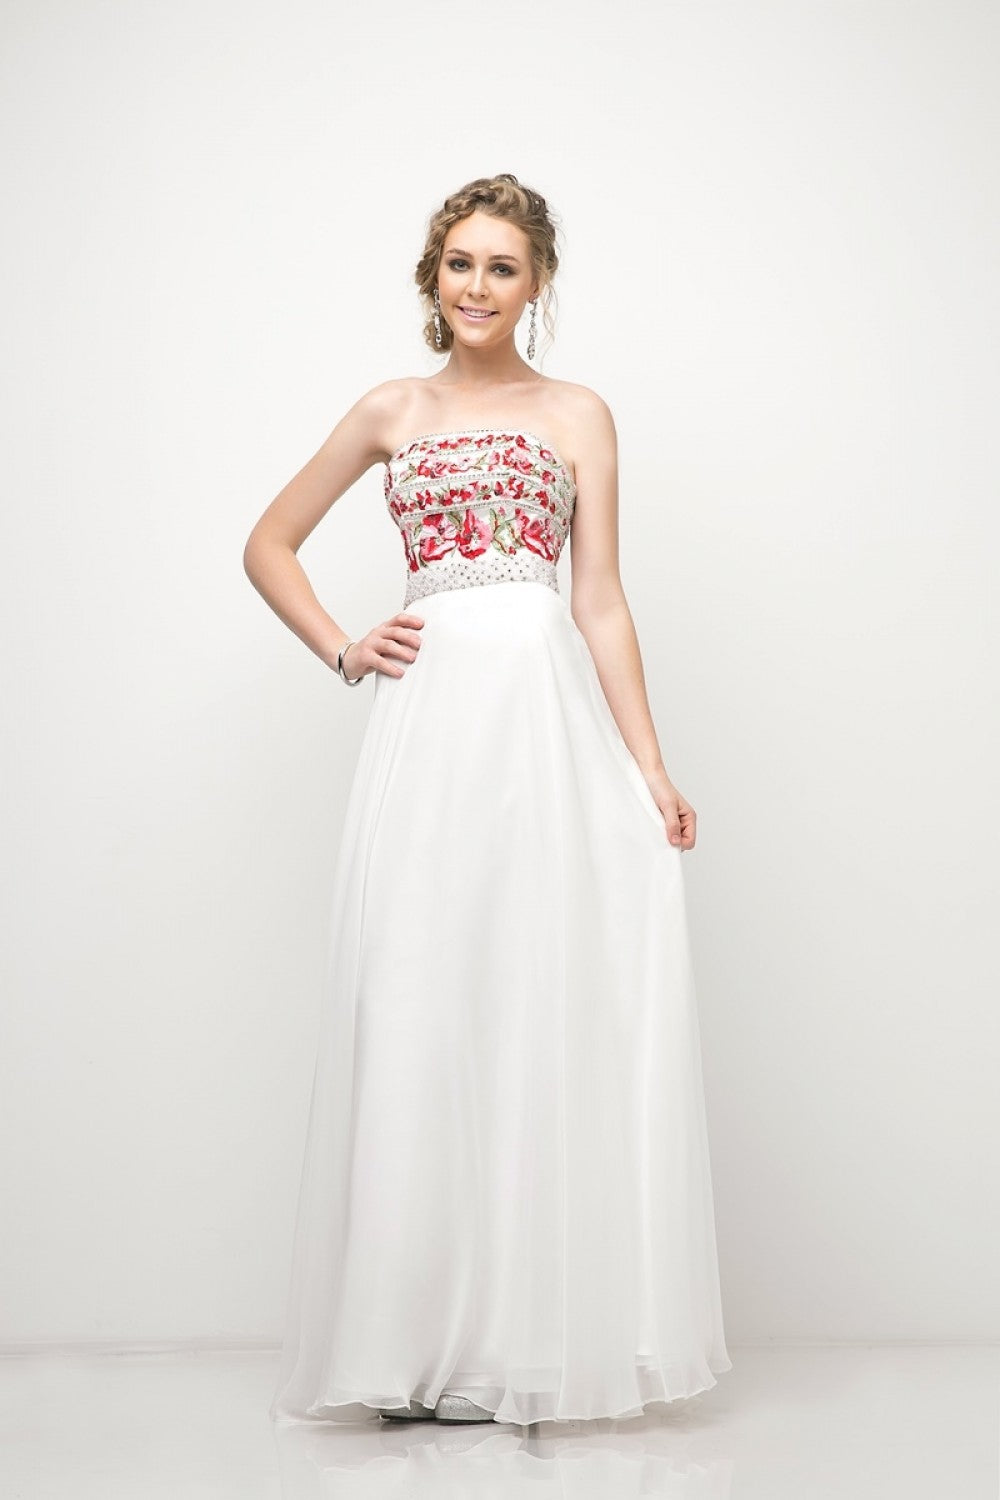 Strapless A-Line Floral Gown With Beaded Details And Chiffon Skirt